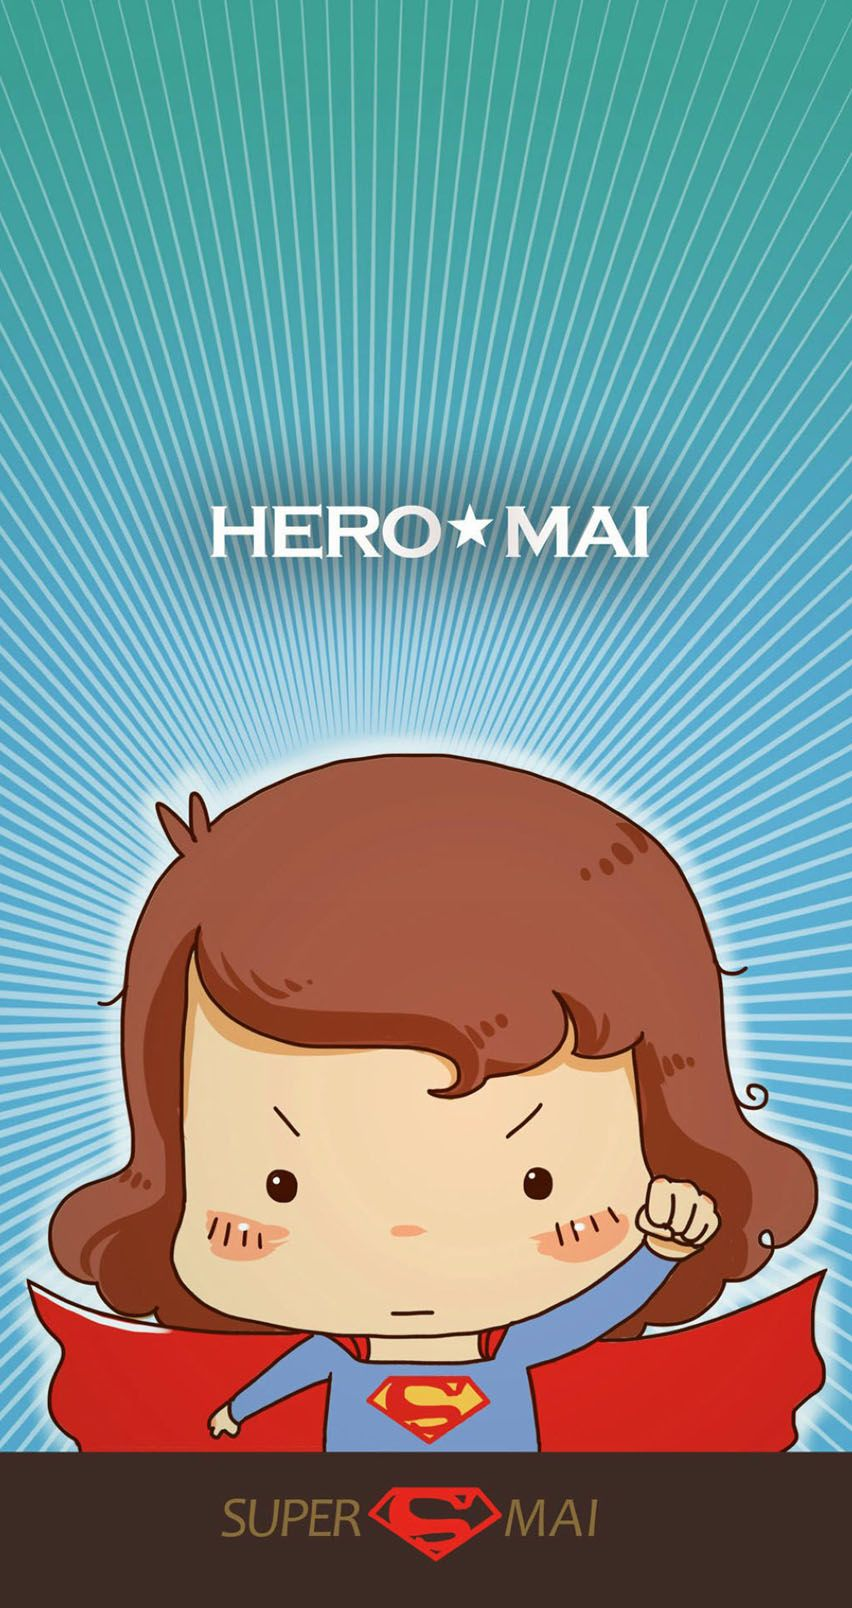 Love cartoon Funny Wallpaper : Supermai. Tap image for more iPhone cute & funny cartoon wallpaper! - @mobile9 Wallpapers for ...